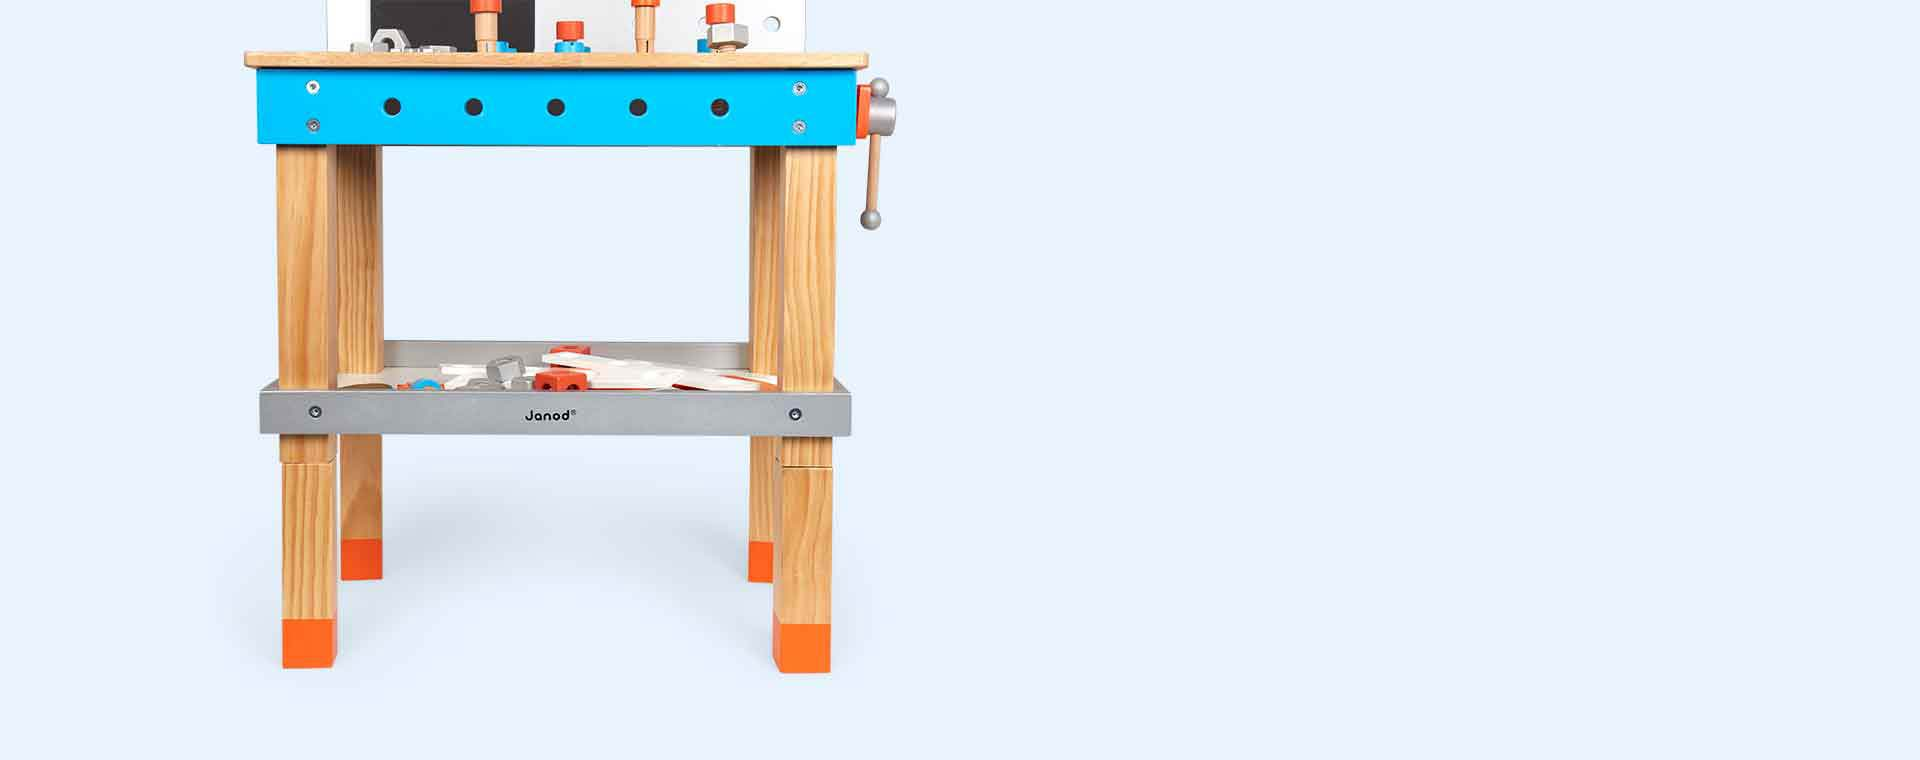 Multi Janod Brico'Kids DIY Giant Magnetic Workbench